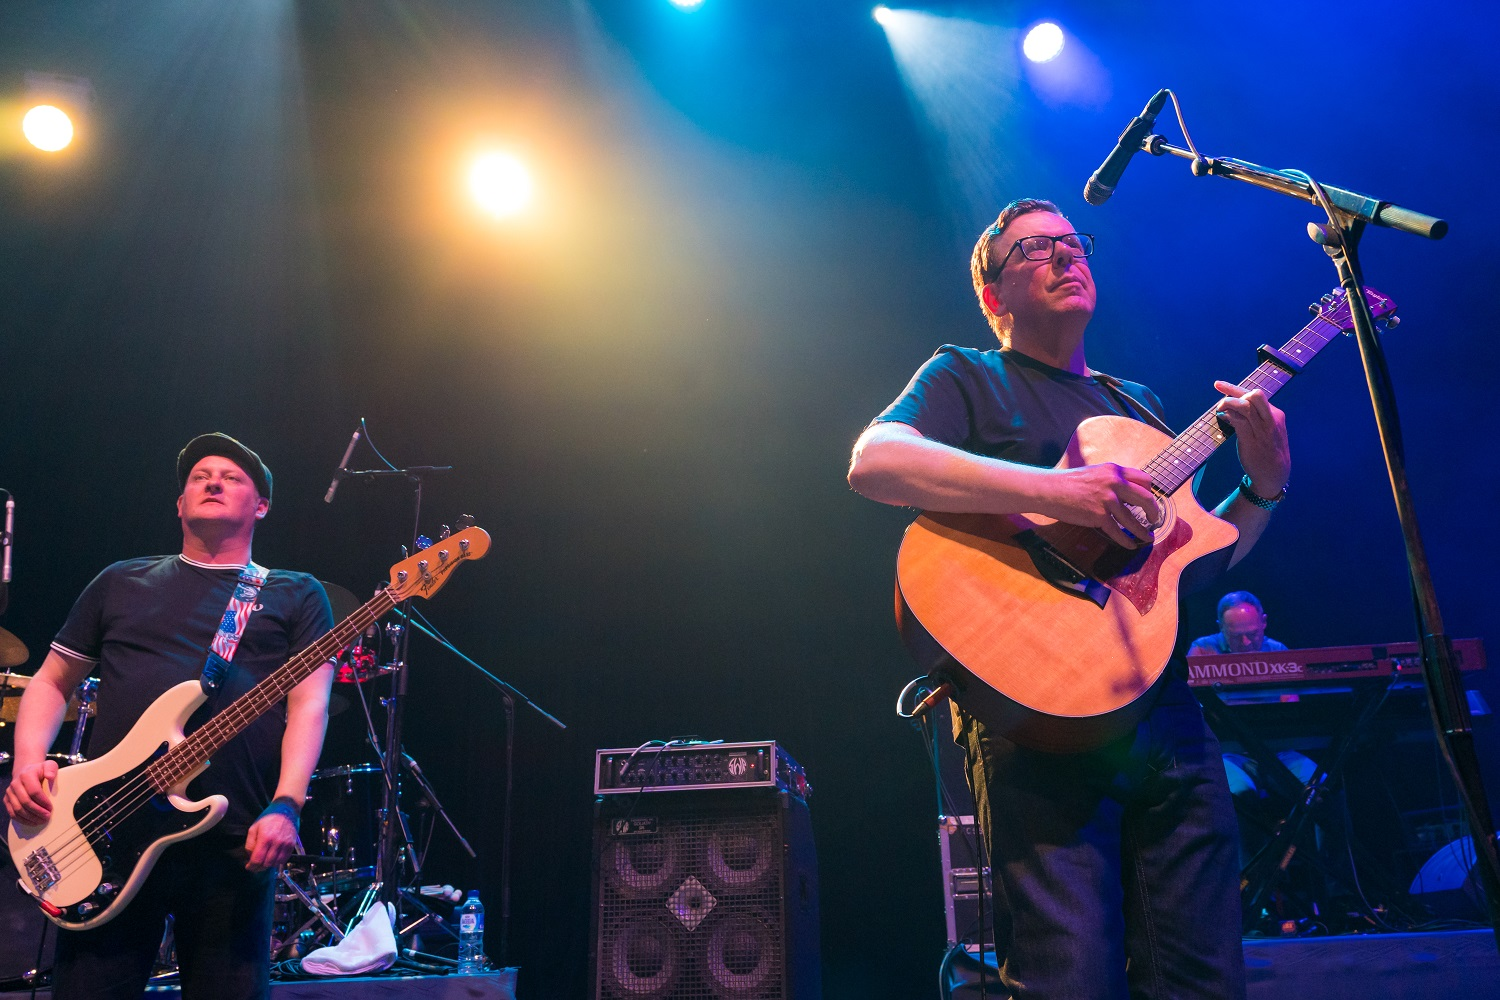 Pesta Pora Konser The Proclaimers di Singapura